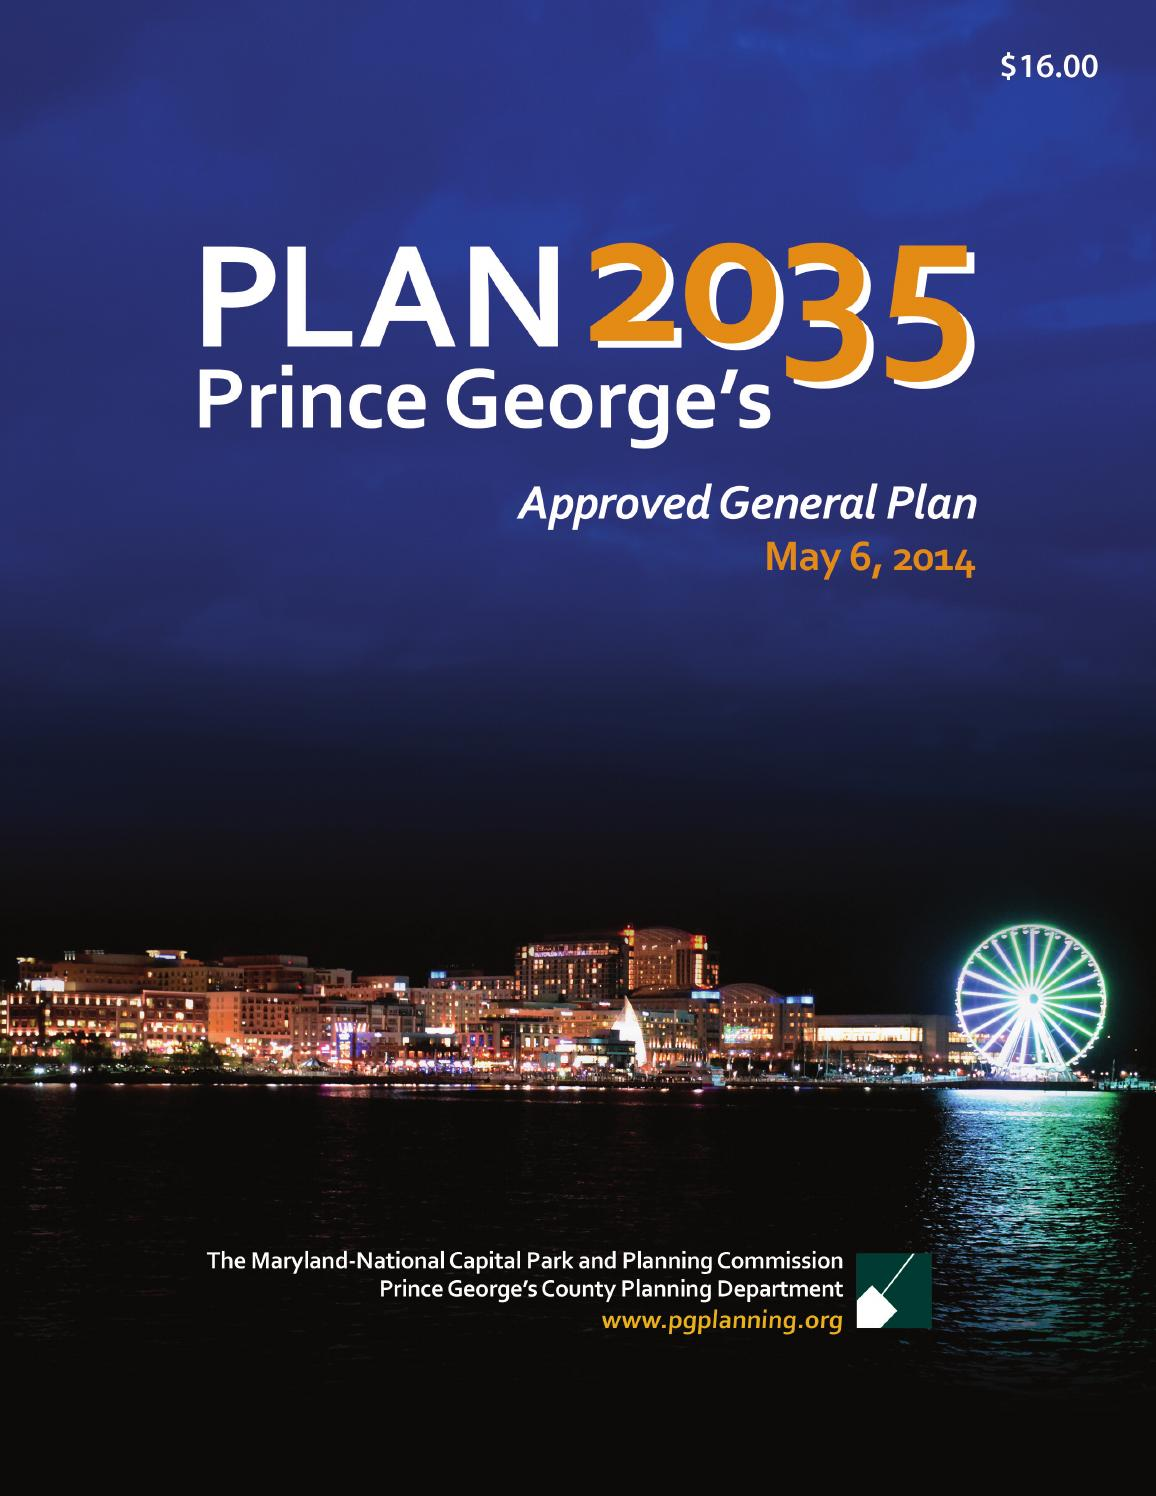 Plan 2035 Approved General Plan By Maryland National Capital Park